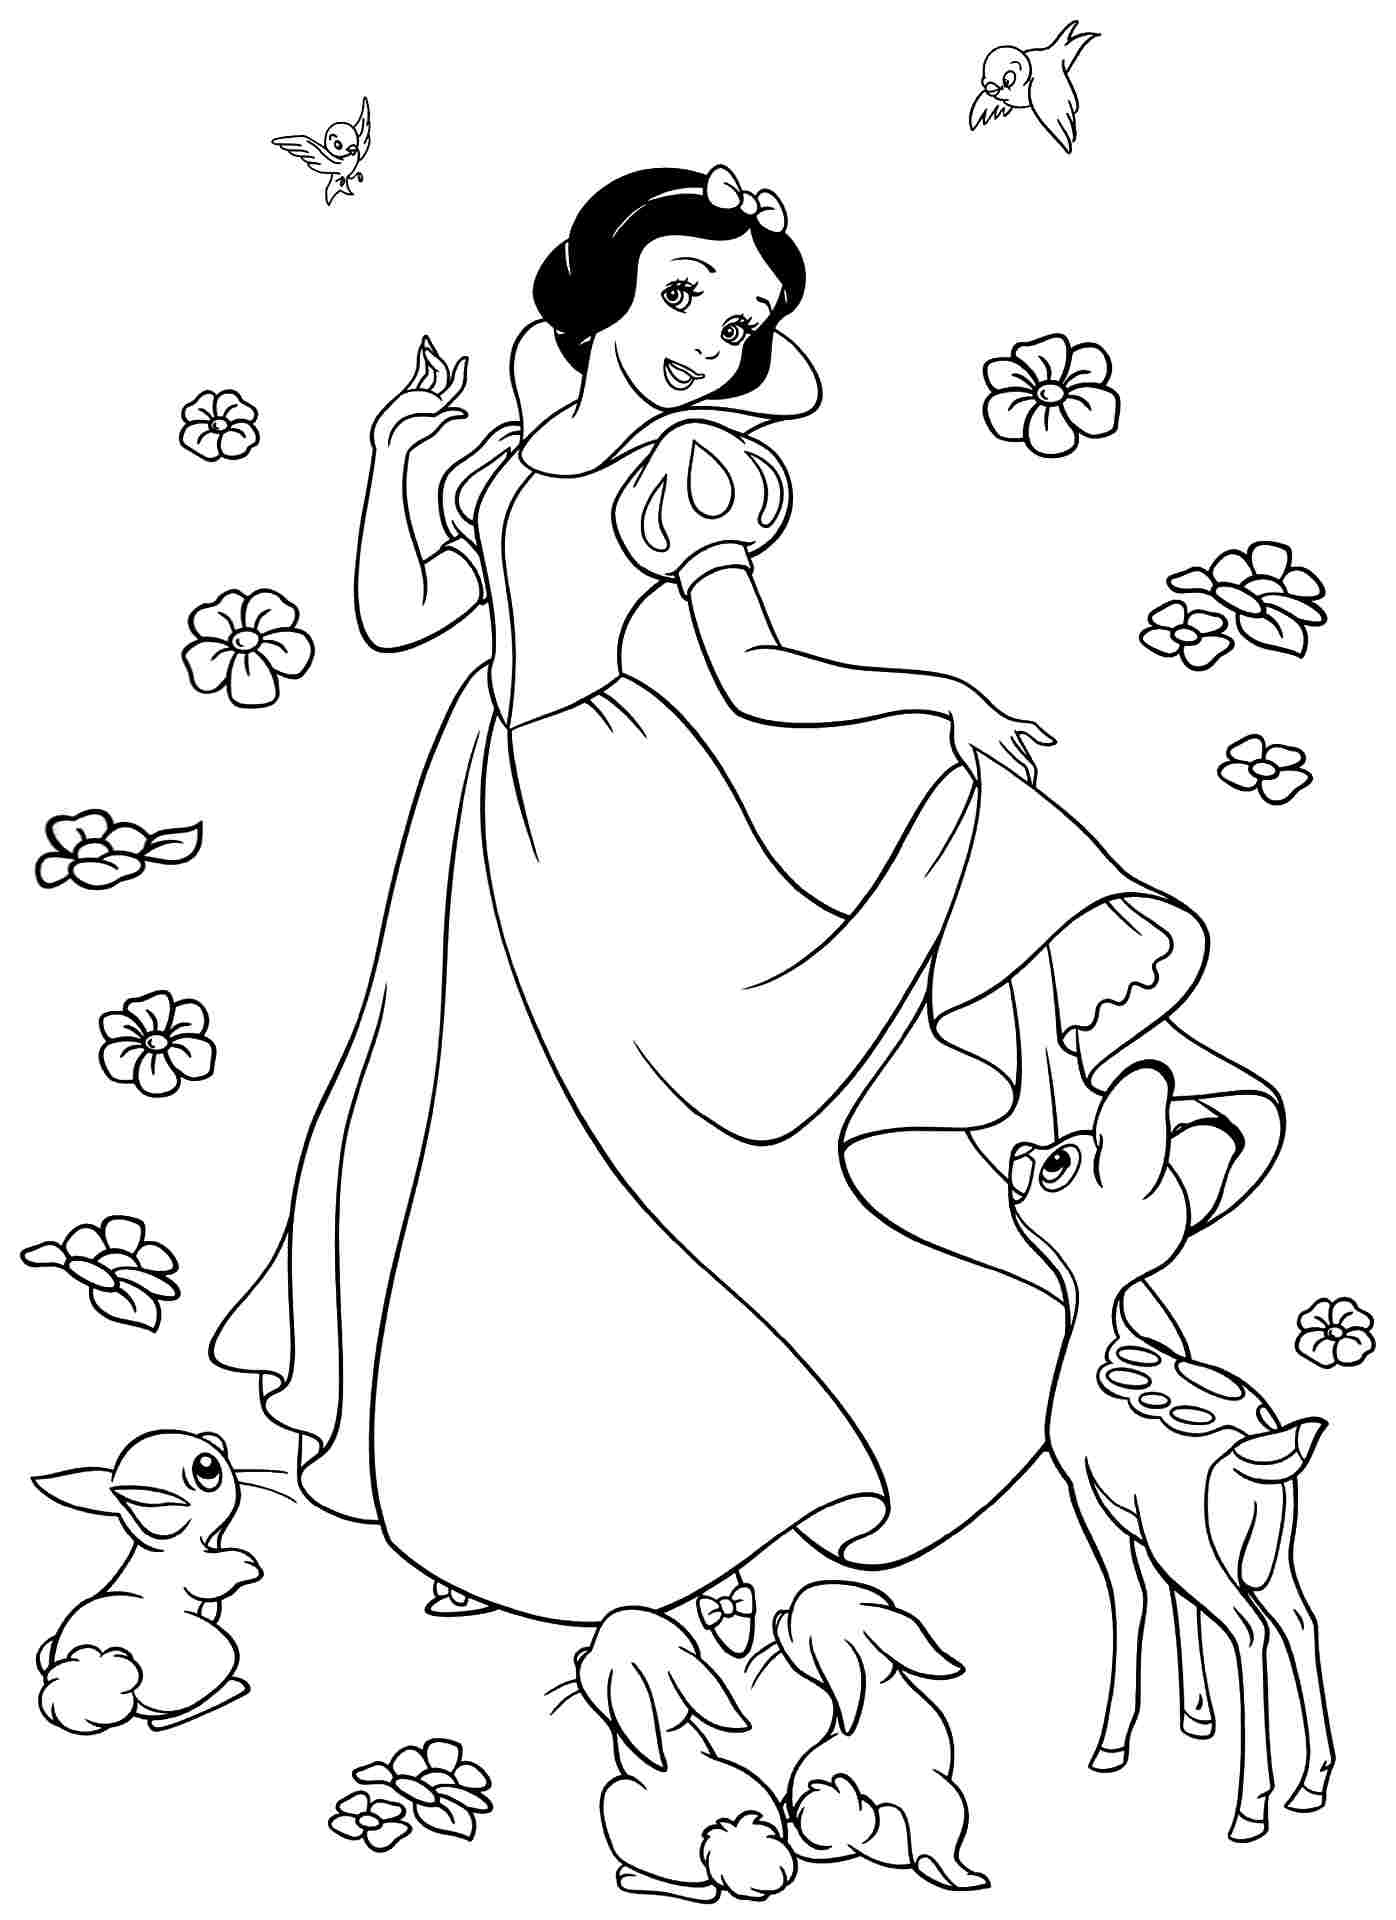 coloring book for kids doll coloring pages best coloring pages for kids kids coloring for book